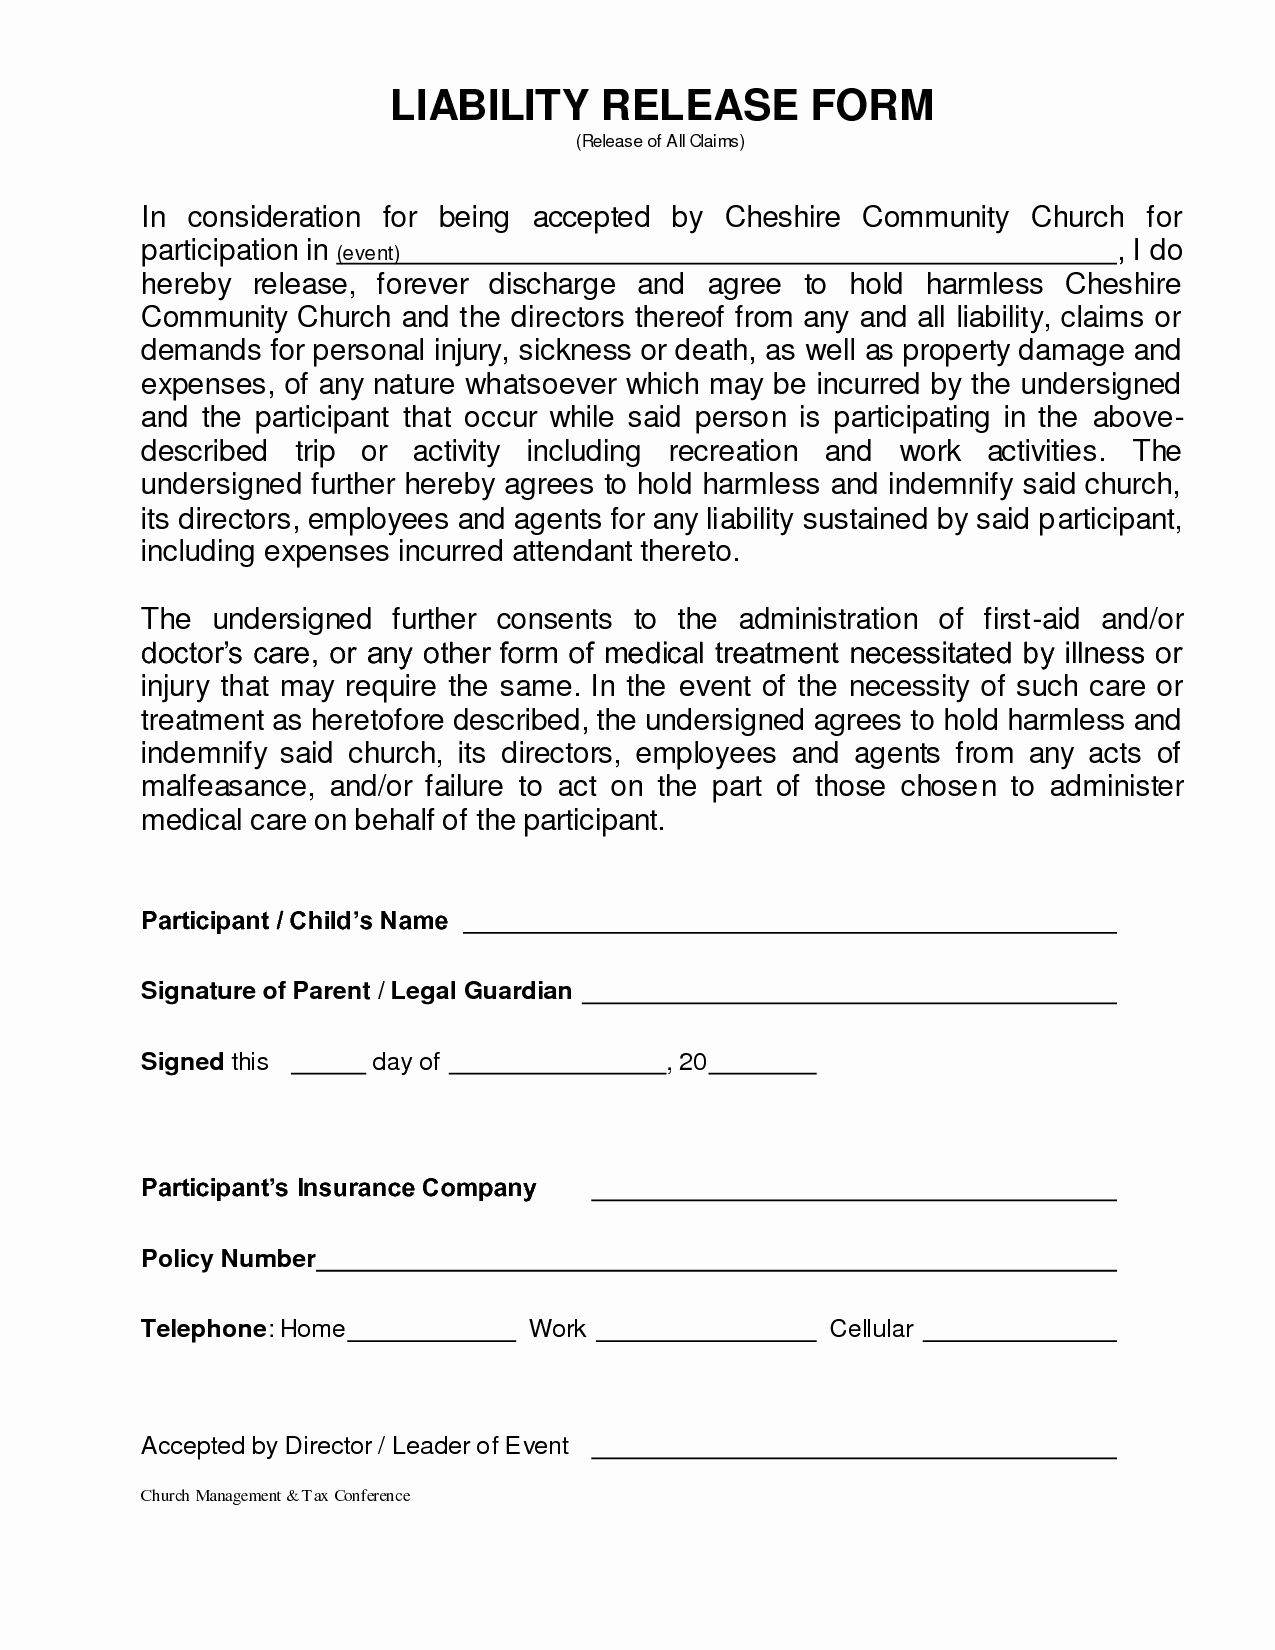 Personal Property Release Form Template Lovely 26 Of Personal Liability Release Form Template Job Application Template Liability Waiver Templates